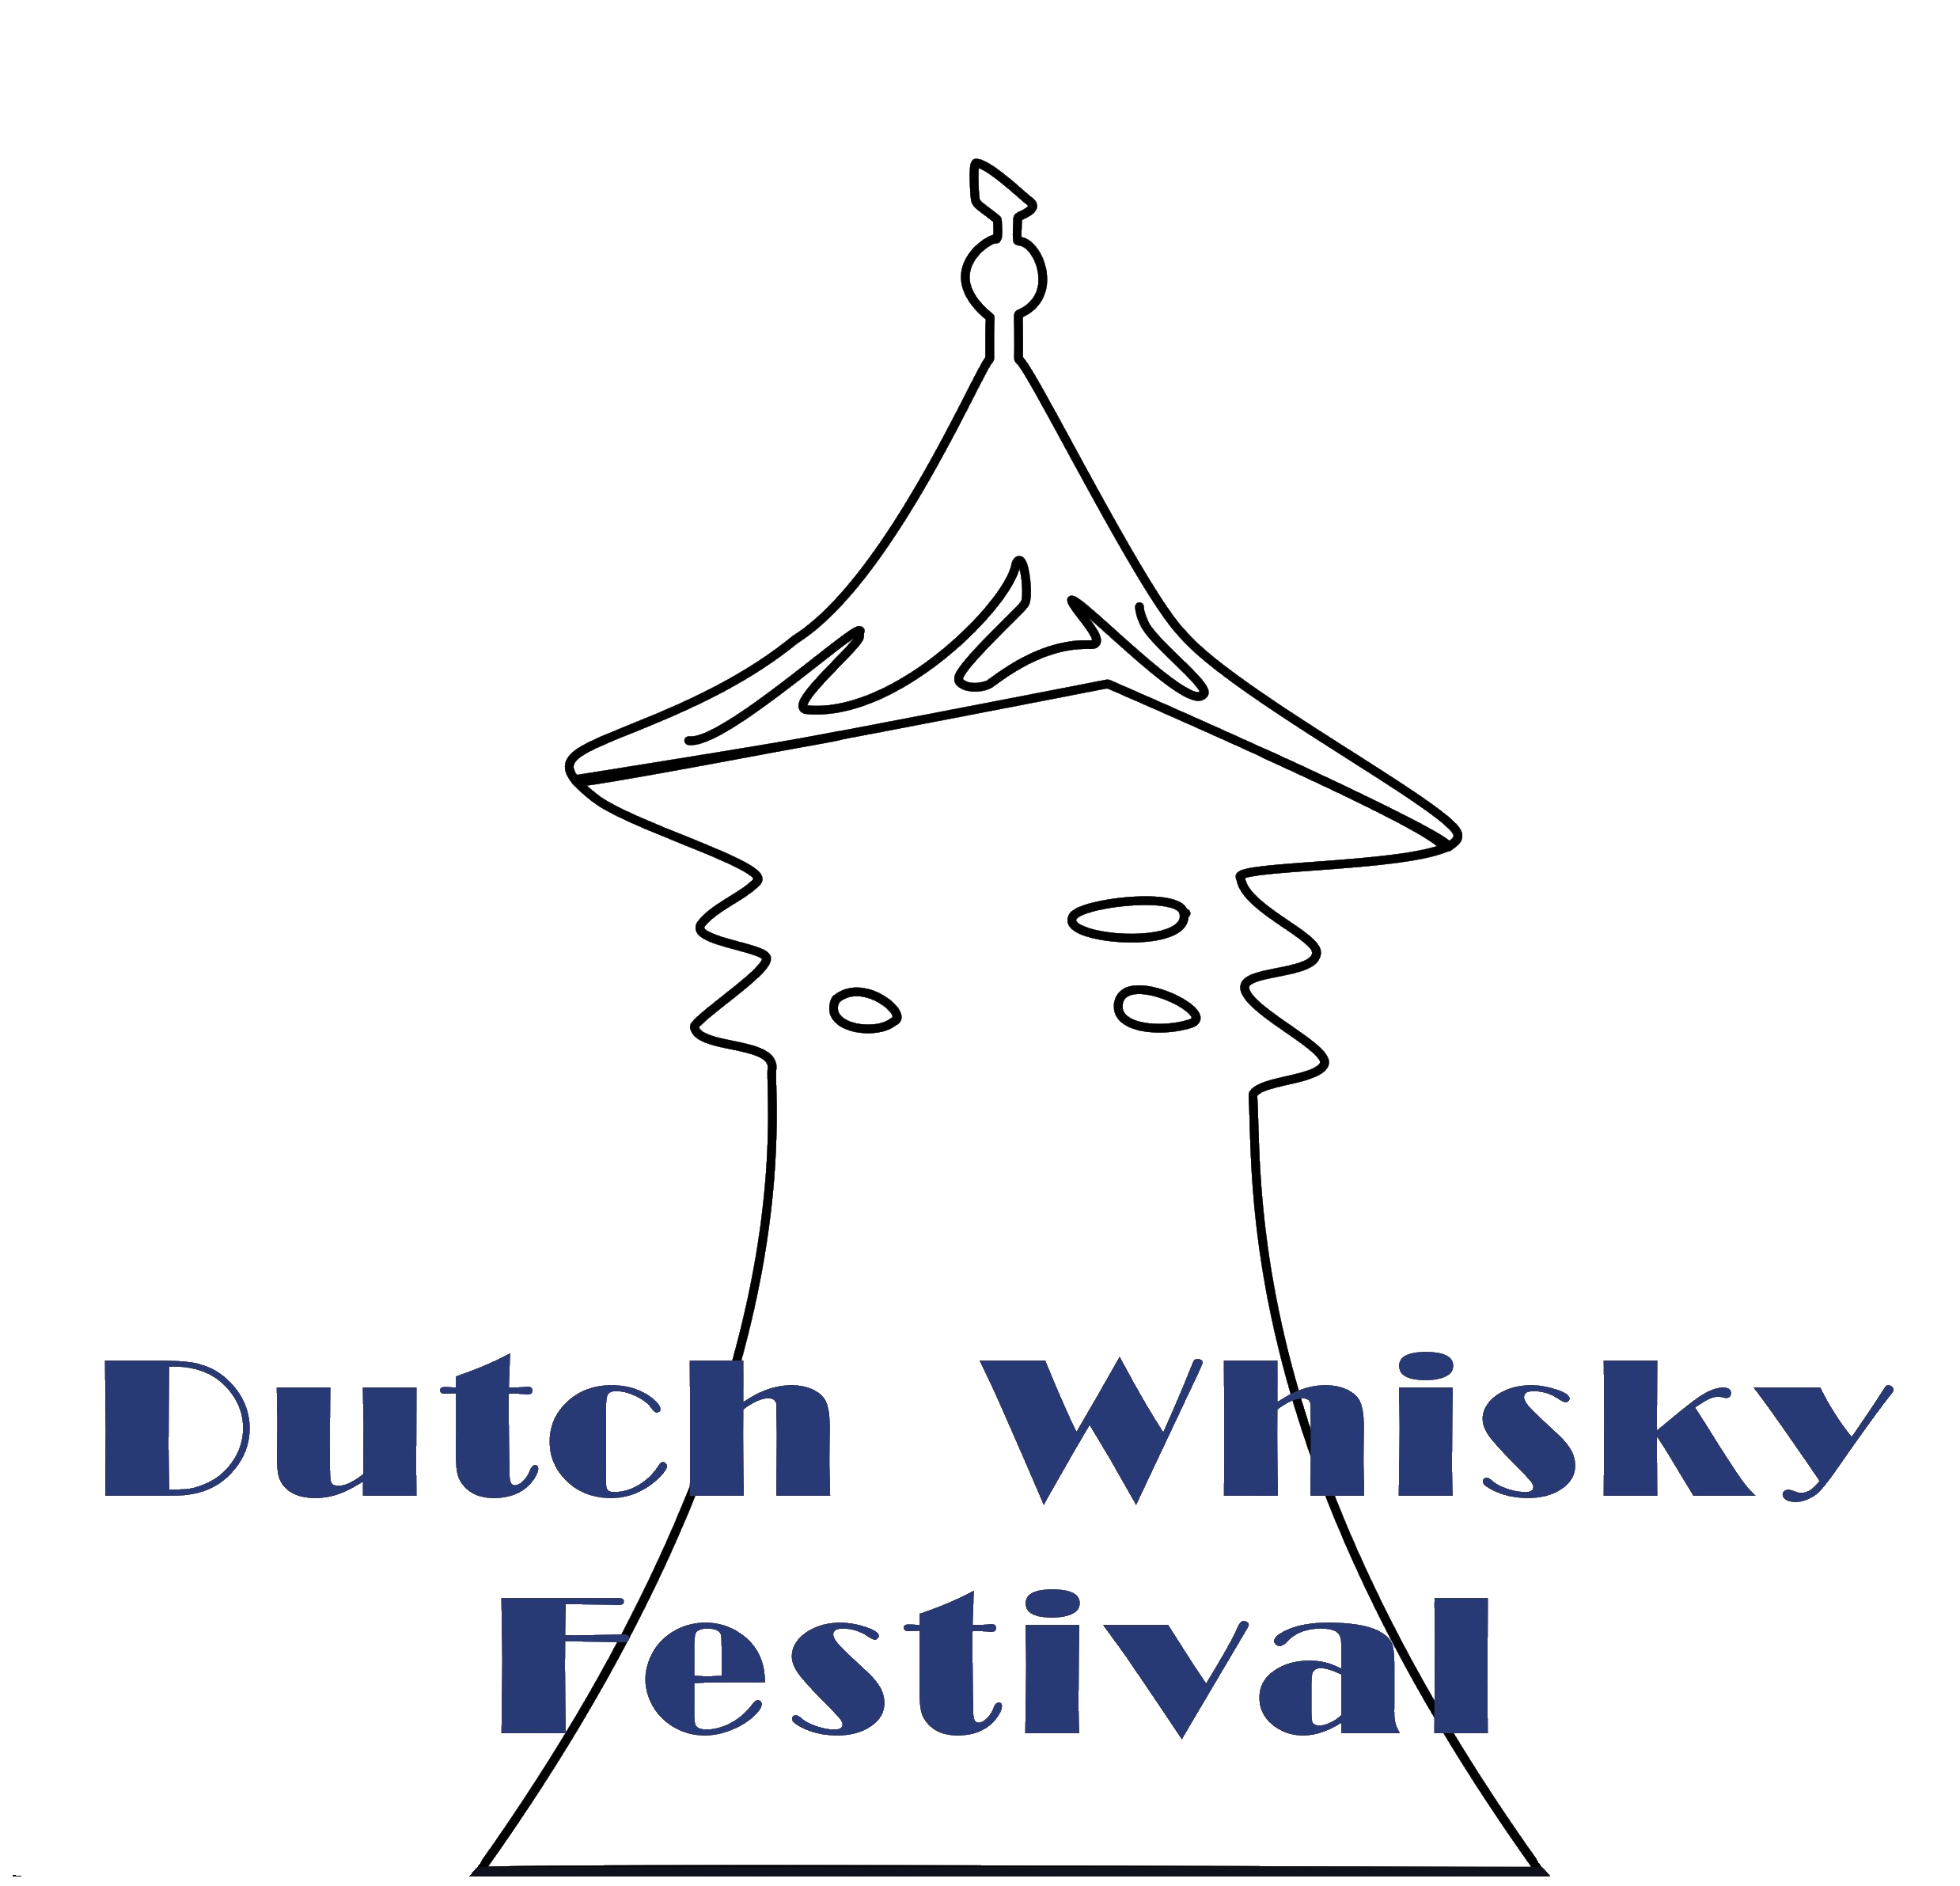 Dutch Whisky Festival Logo